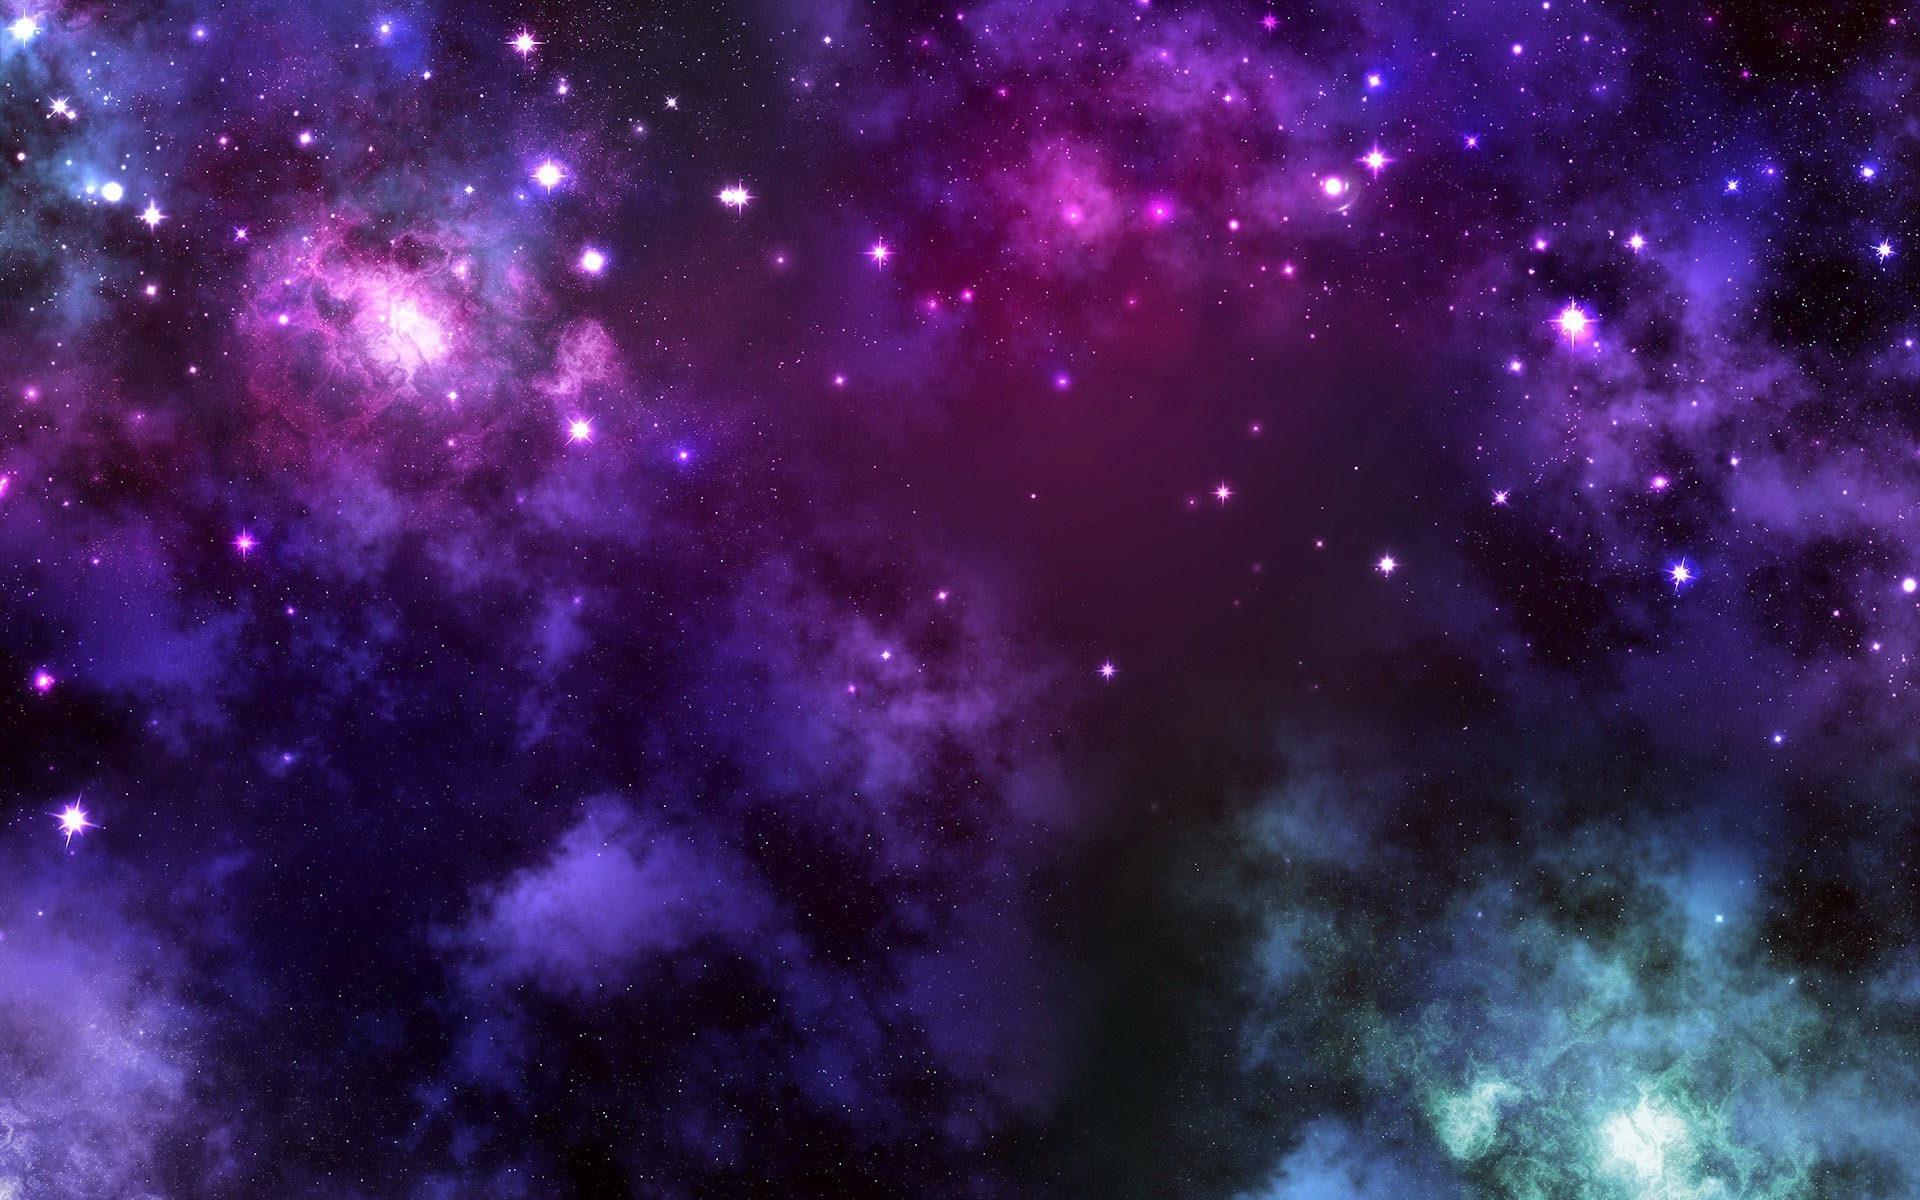 Purple Galaxies Wallpaper - Pics about space